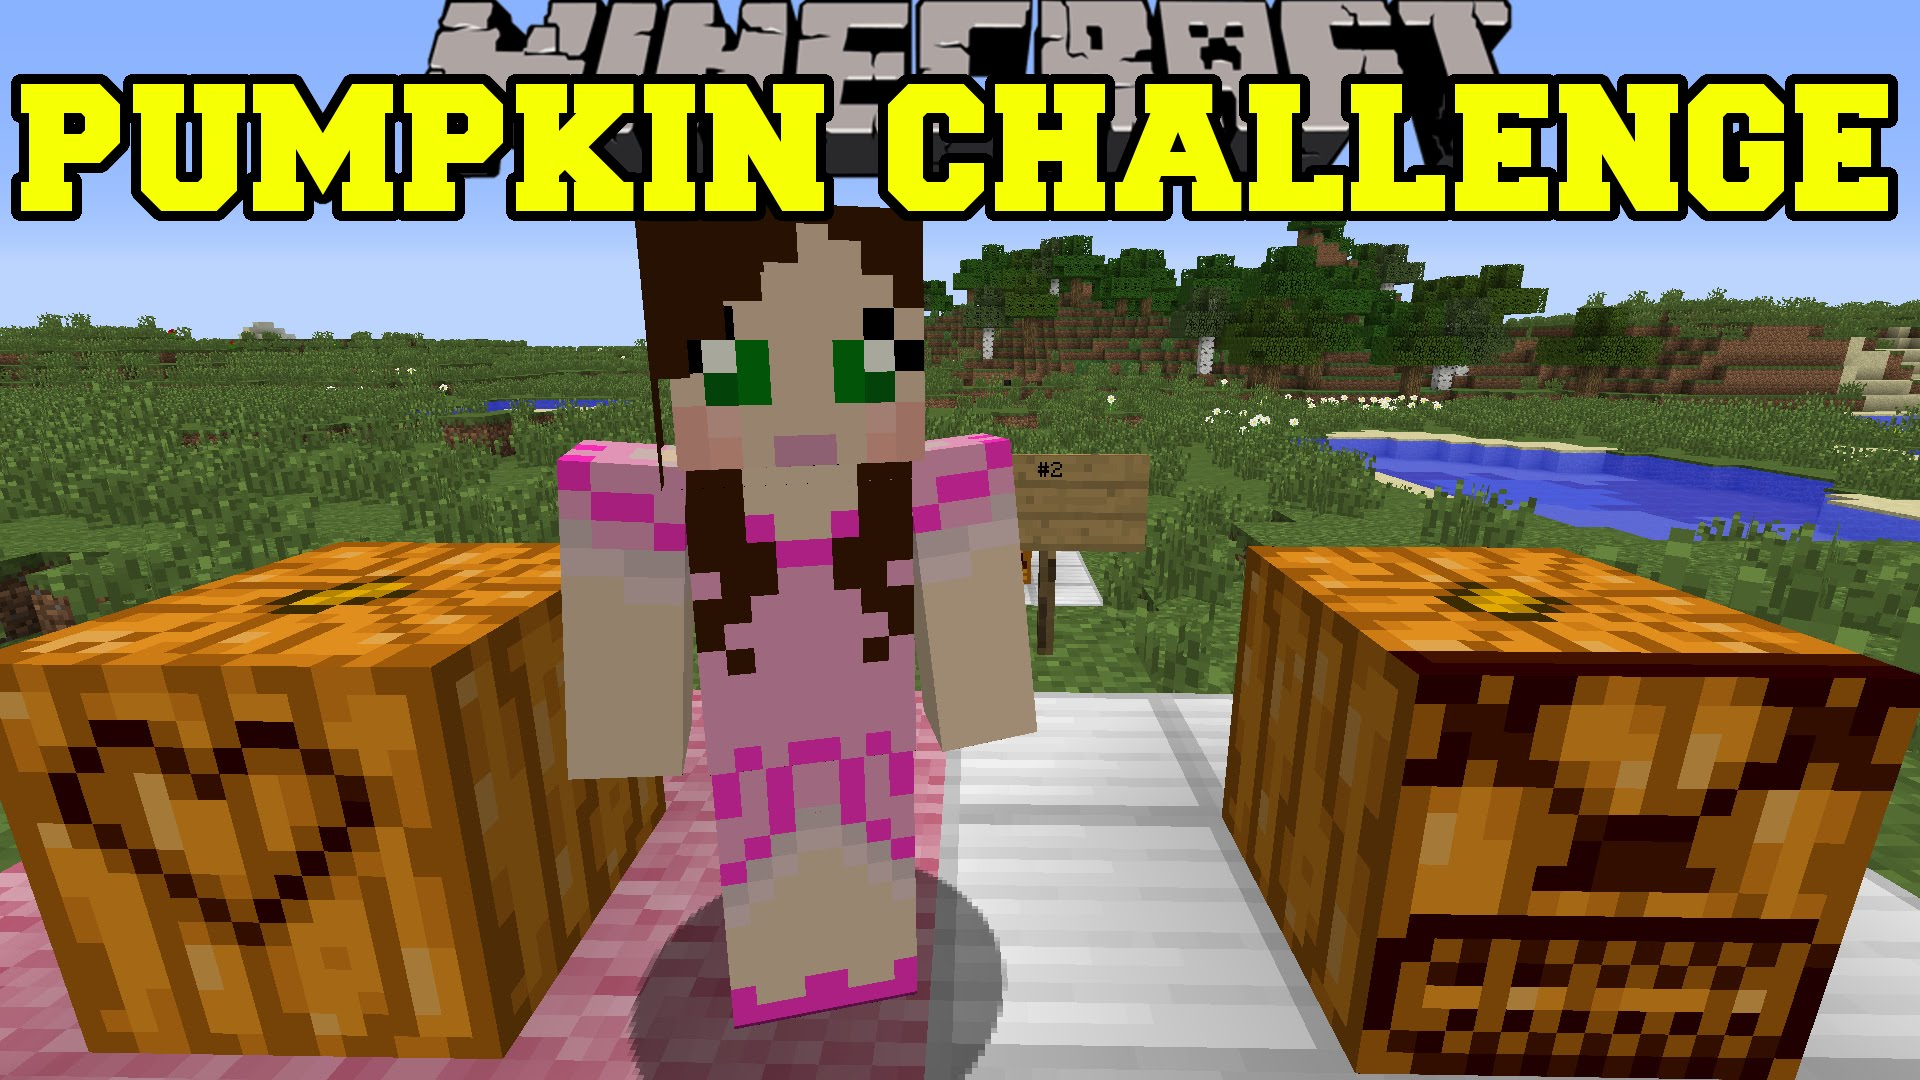 Pat And Jen YouTube Minecraft Pat And Jen Minecraft Youtube View 1920x1080